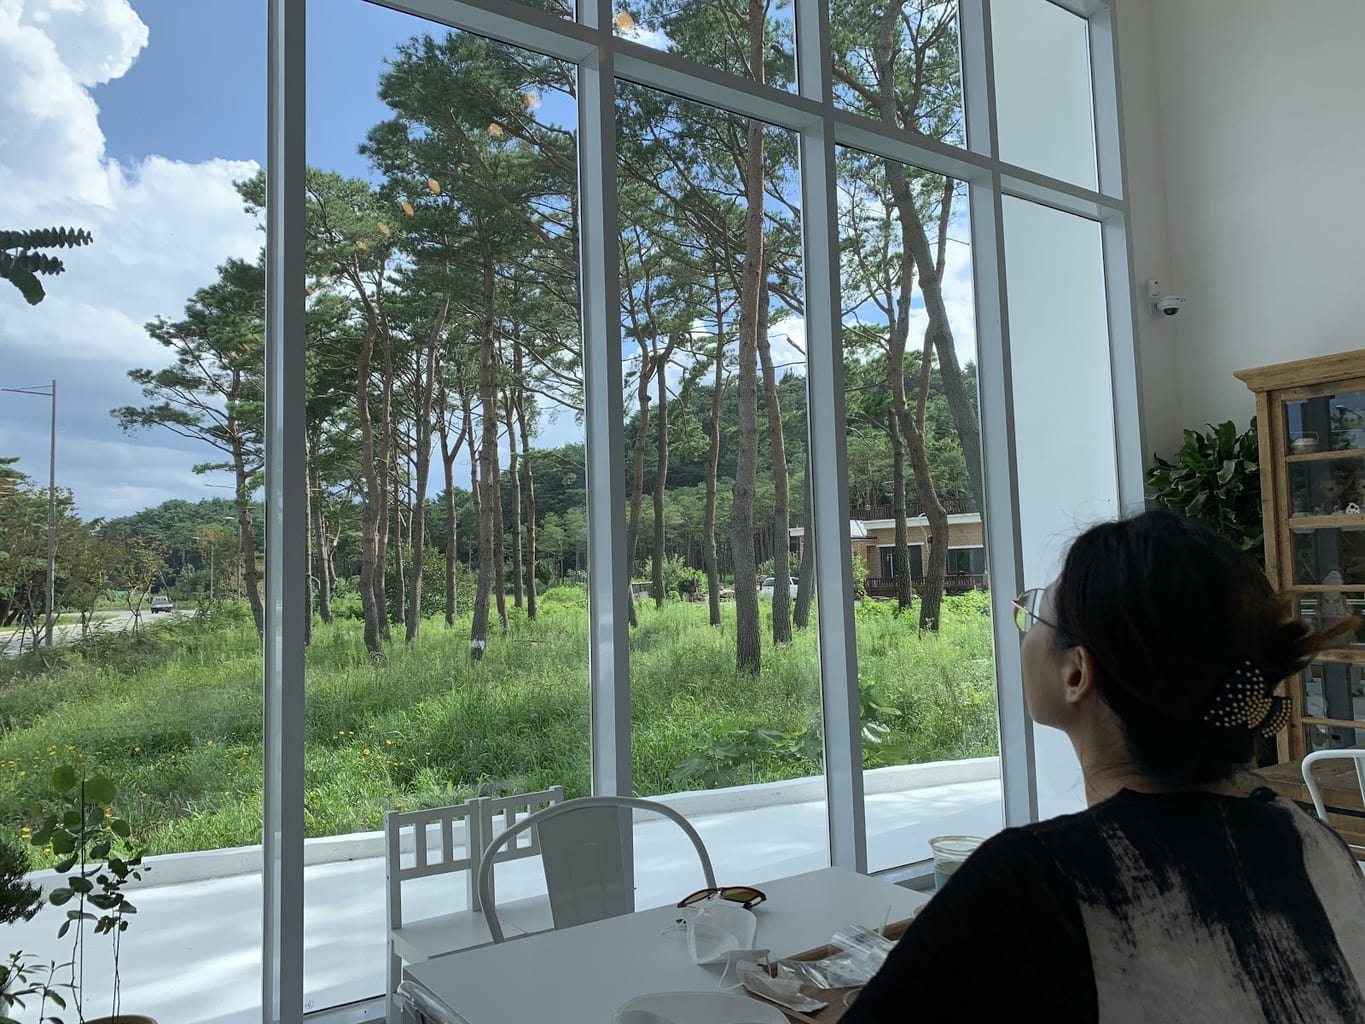 More beautiful coffee shop views in Gangneung